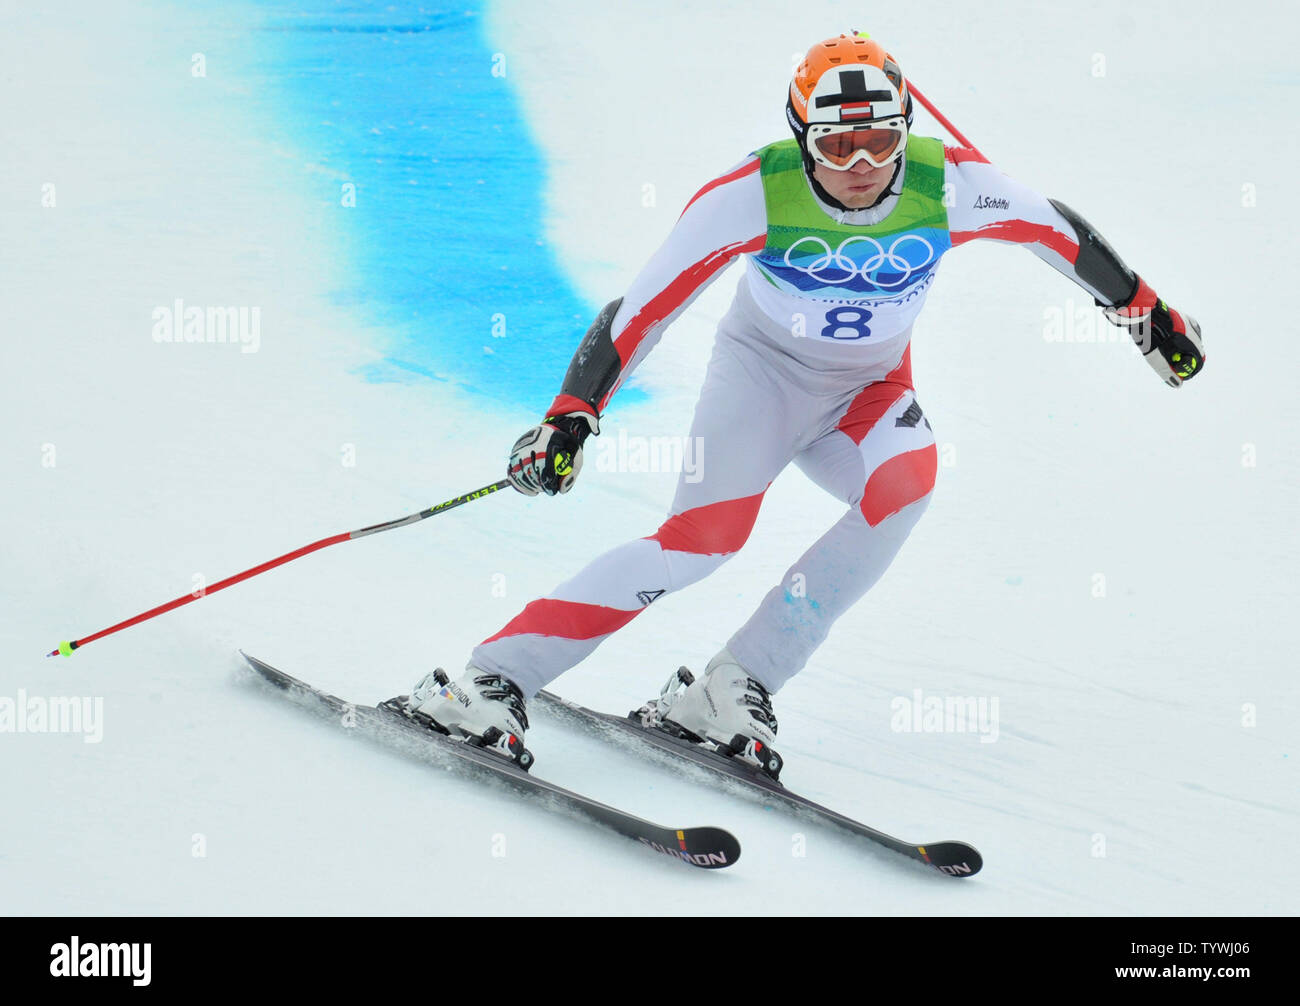 Austria's Romed Baumann competes in the Men's Giant Slalom during the 2010 Vancouver Winter Olympics in Whistler, Canada on February 23, 2010.   UPI/Kevin Dietsh Stock Photo